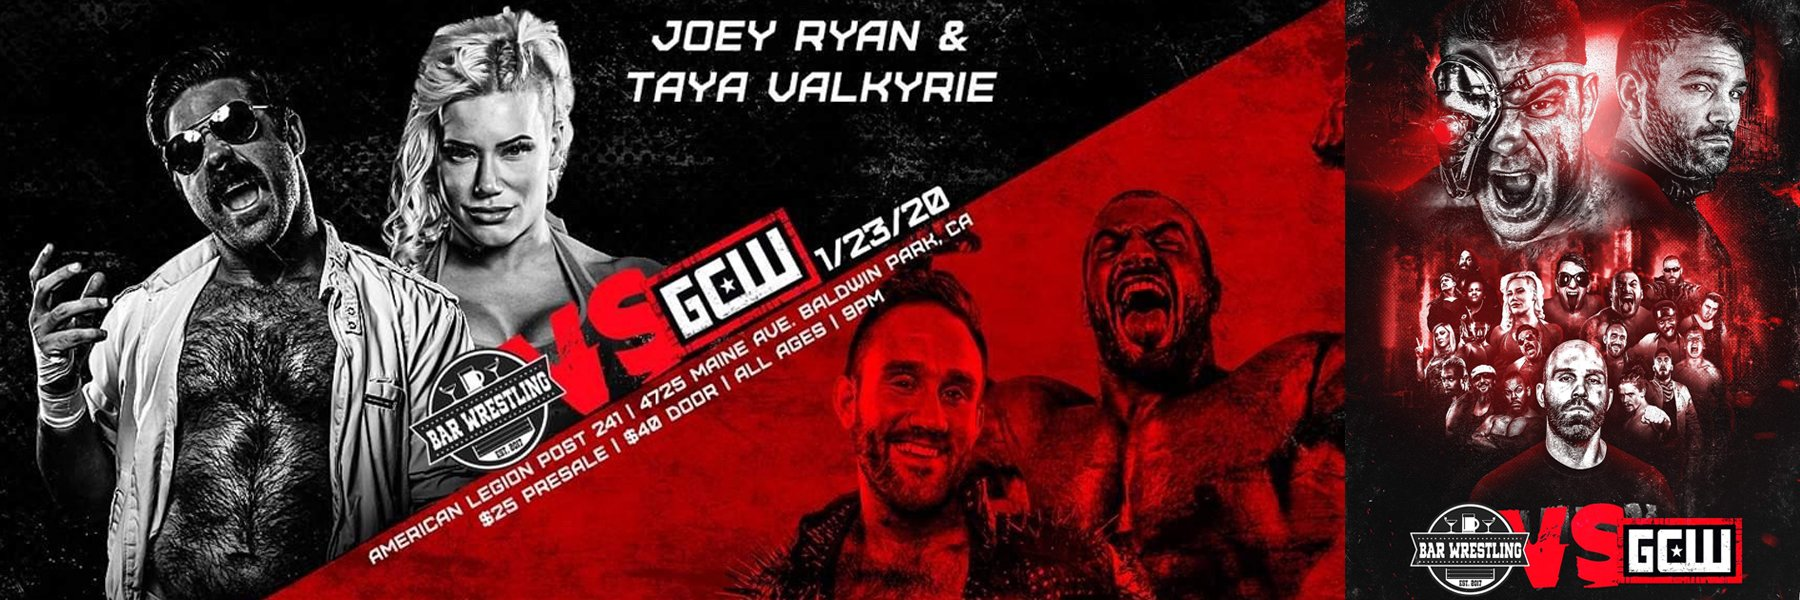 NEW: Bar Wrestling vs Game Changer Wrestling (GCW) Joey Ryan, Taya Valkyrie